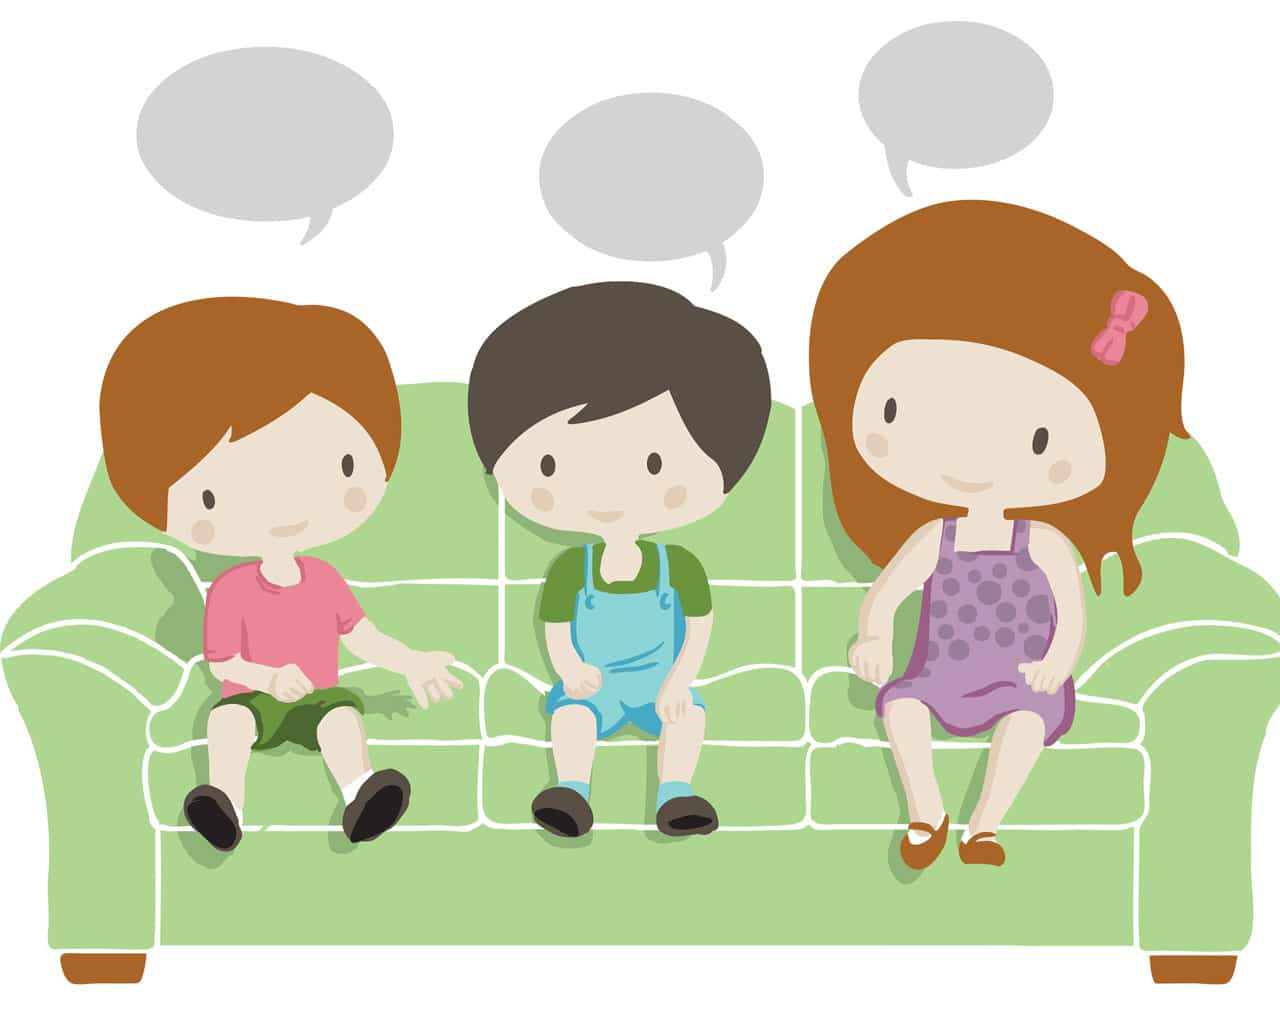 Kids talking on the lounge illustration for Kids Book Therapy Psychologist